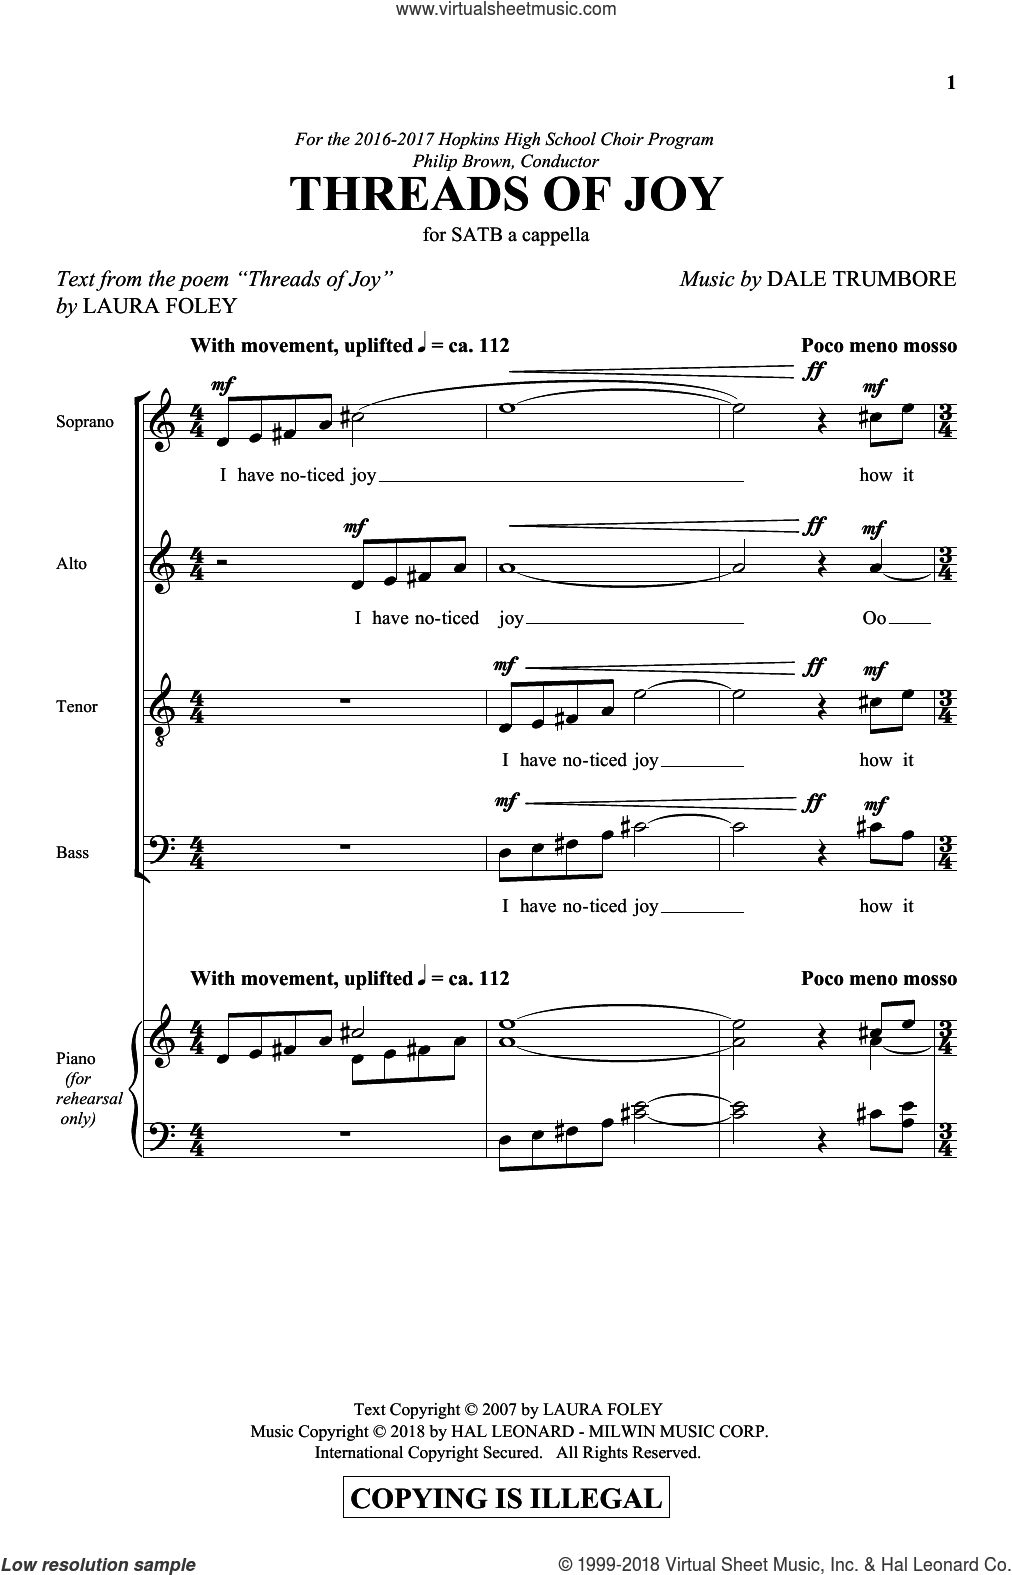 Threads Of Joy sheet music for choir (SATB: soprano, alto, tenor, bass) by Dale Trumbore and Laura Foley, intermediate skill level